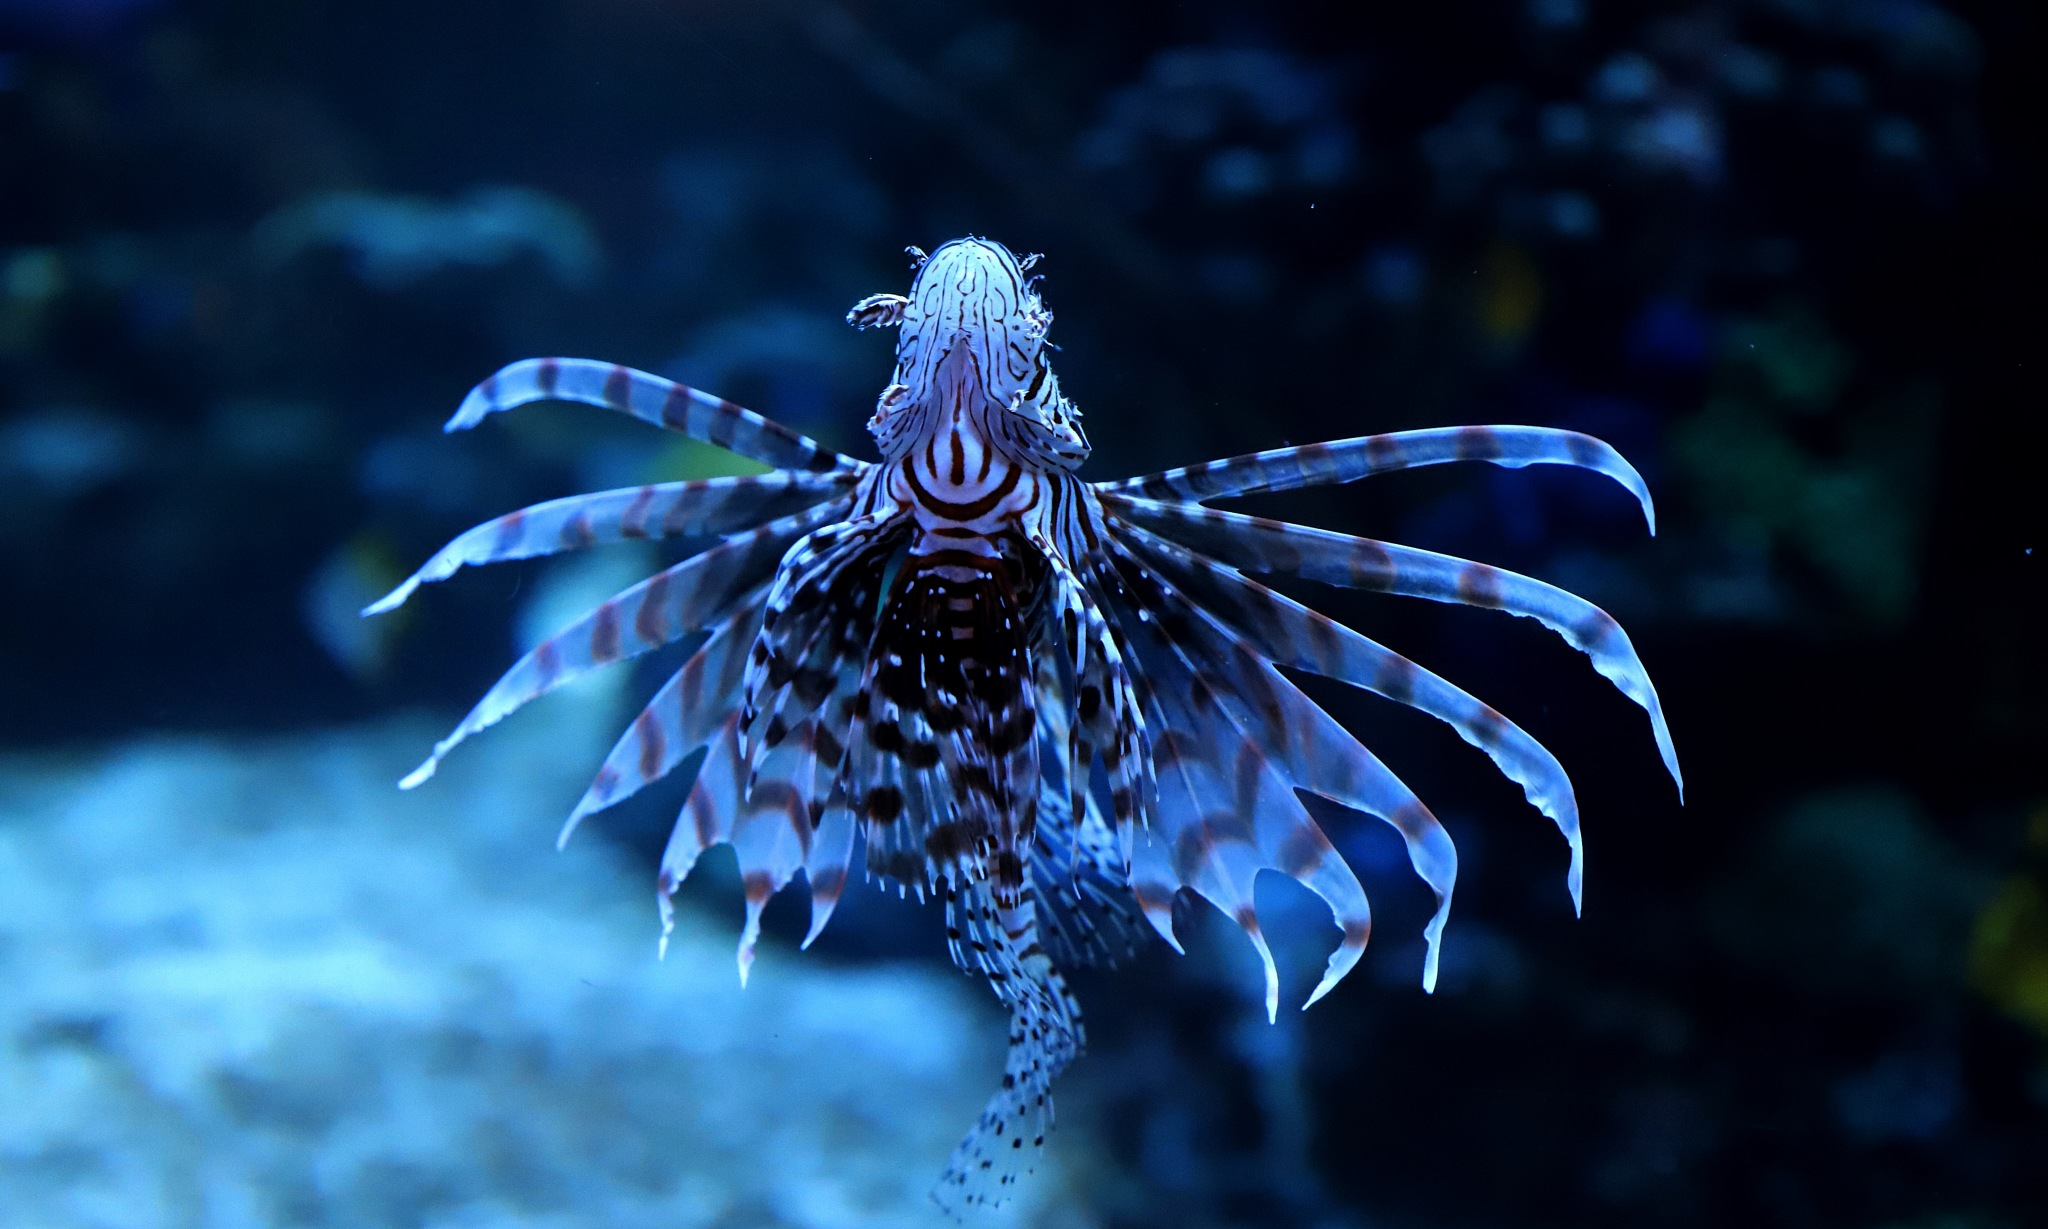 Lionfish by Andreia_Costa